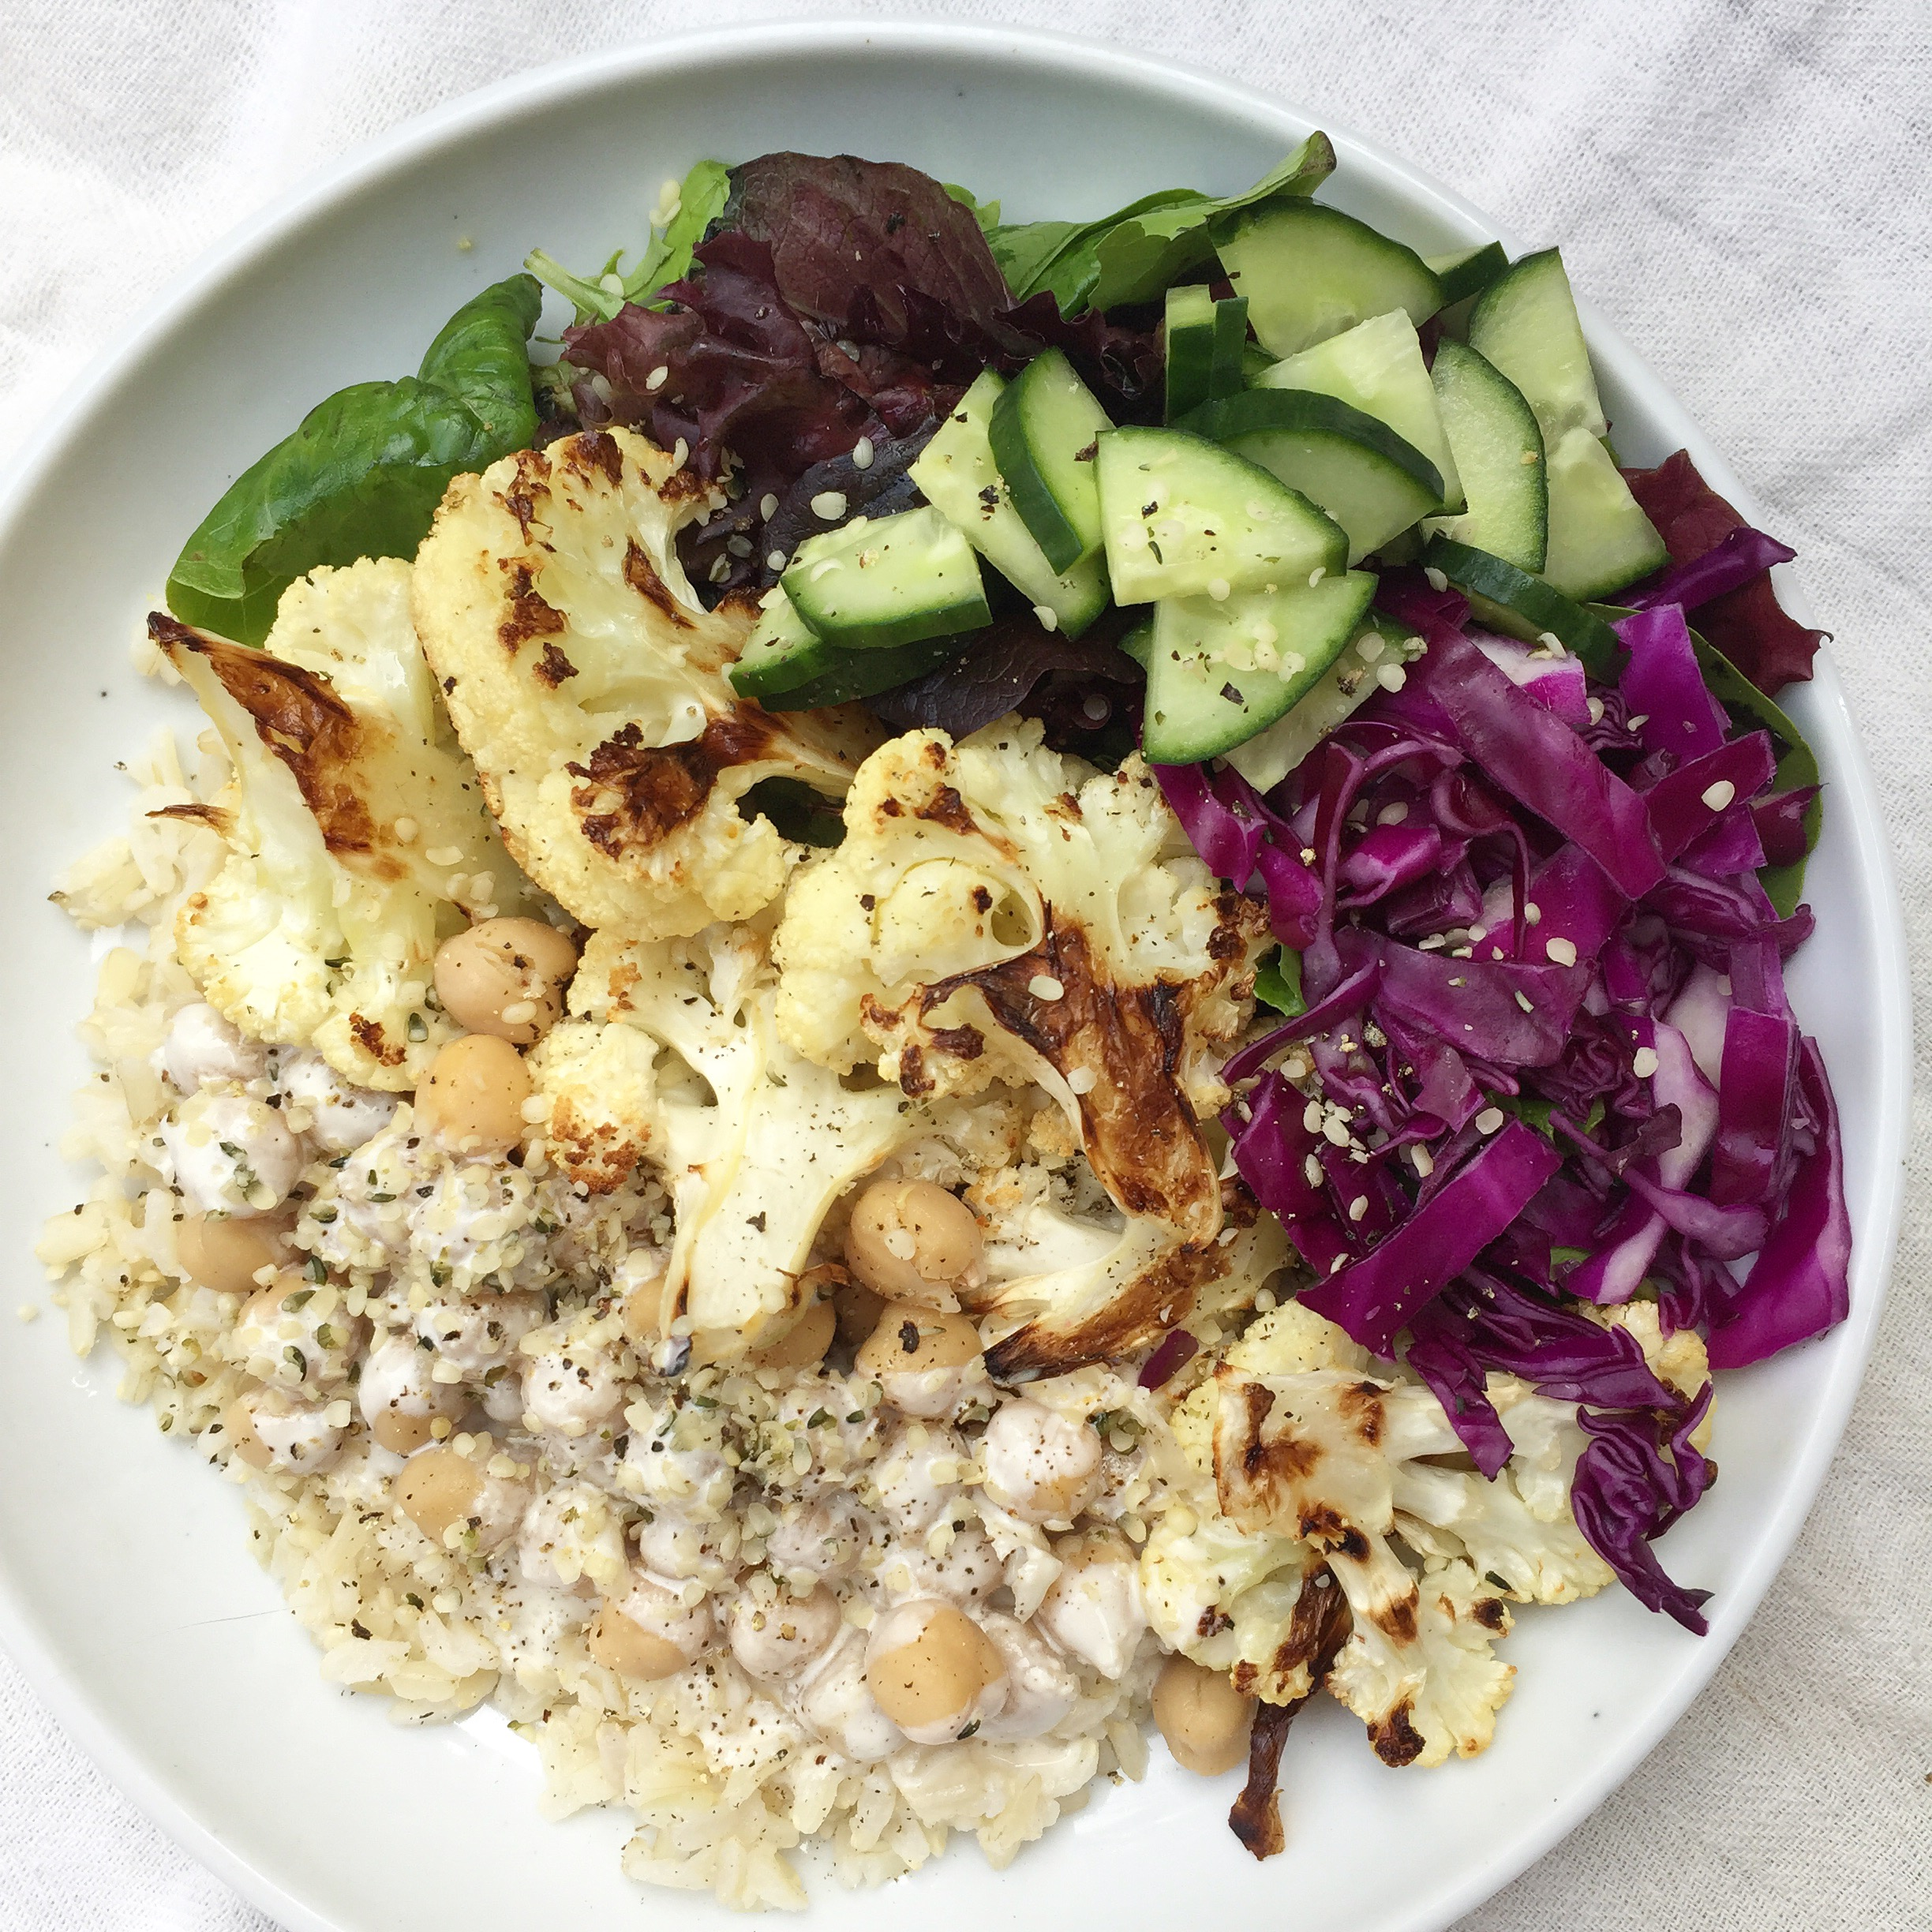 Middle Eastern-inspired bowl with brown rice, chickpeas, roasted cauliflower, raw red cabbage, cucumber, baby lettuce mix, creamy garlic sauce, hemp seeds, and fresh cracked pepper.